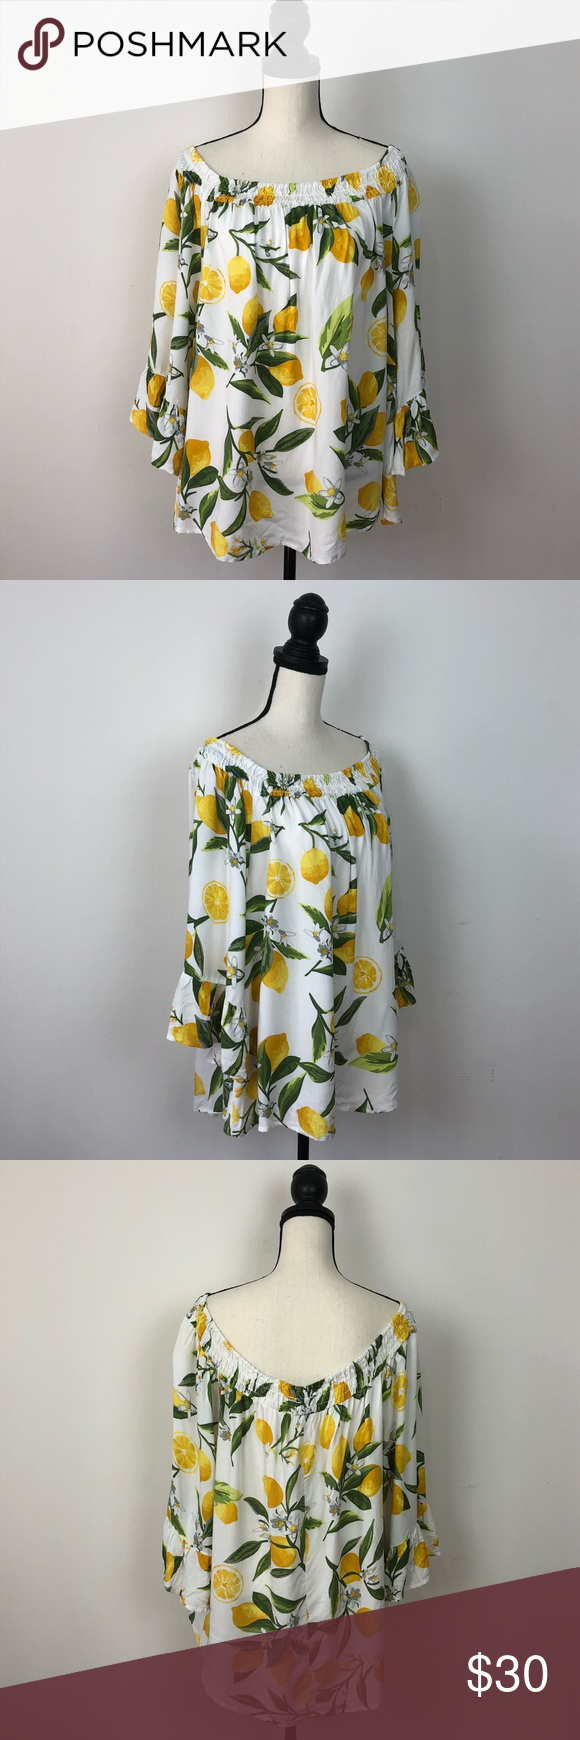 bf11bcbae23c5b NWT Unique Spectrum Lemon Off the Shoulder Blouse Brand new beautiful lemon  print off the shoulder